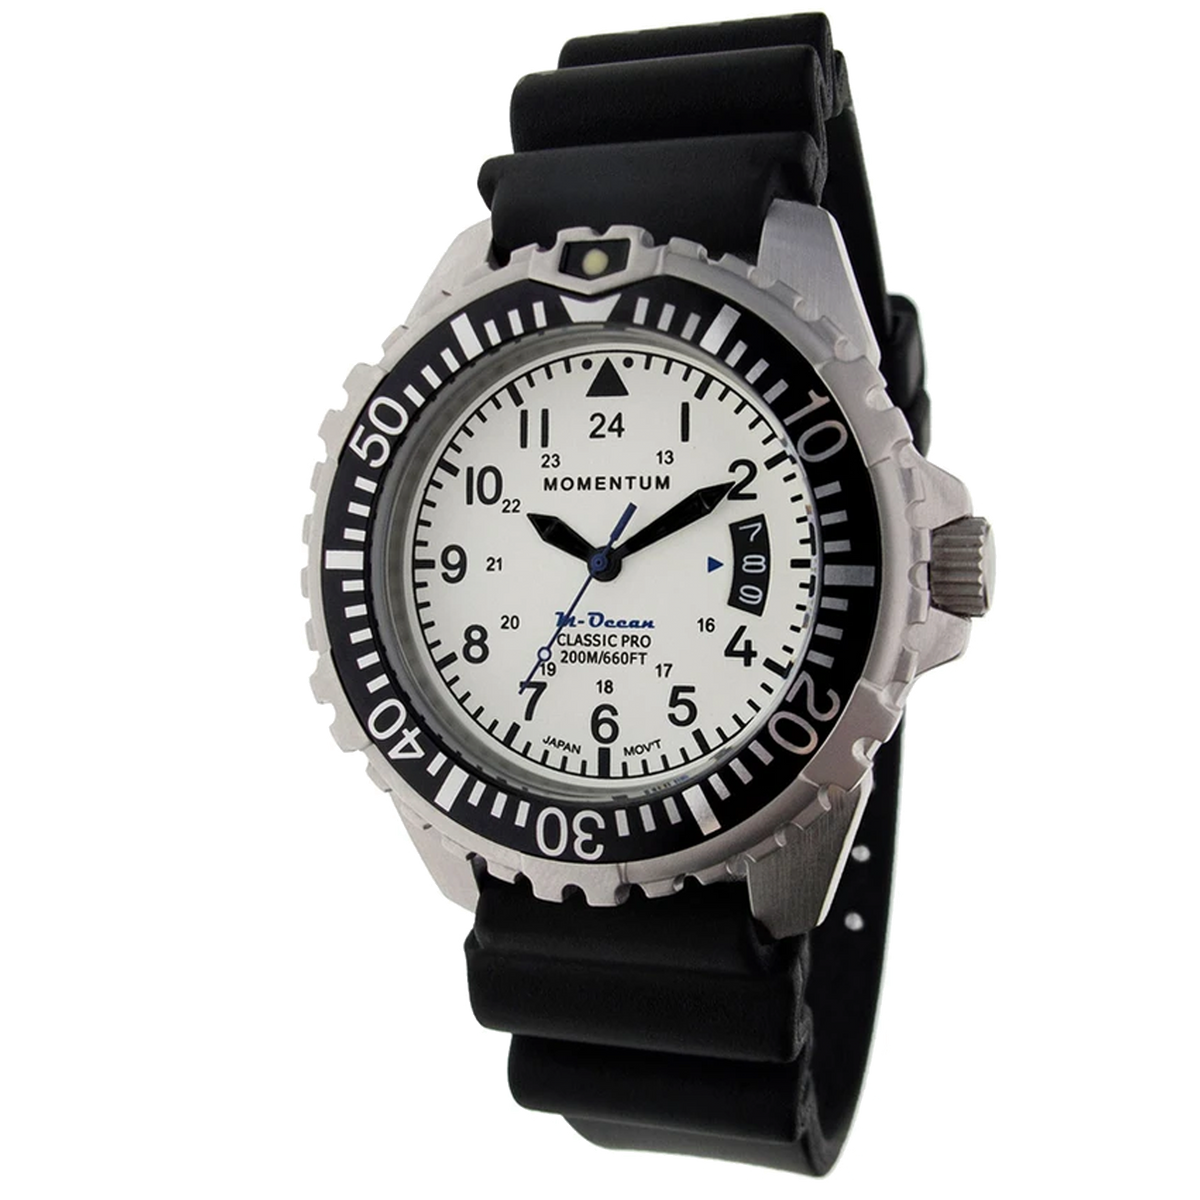 Momentum M-Ocean - White Dial with Black Rubber